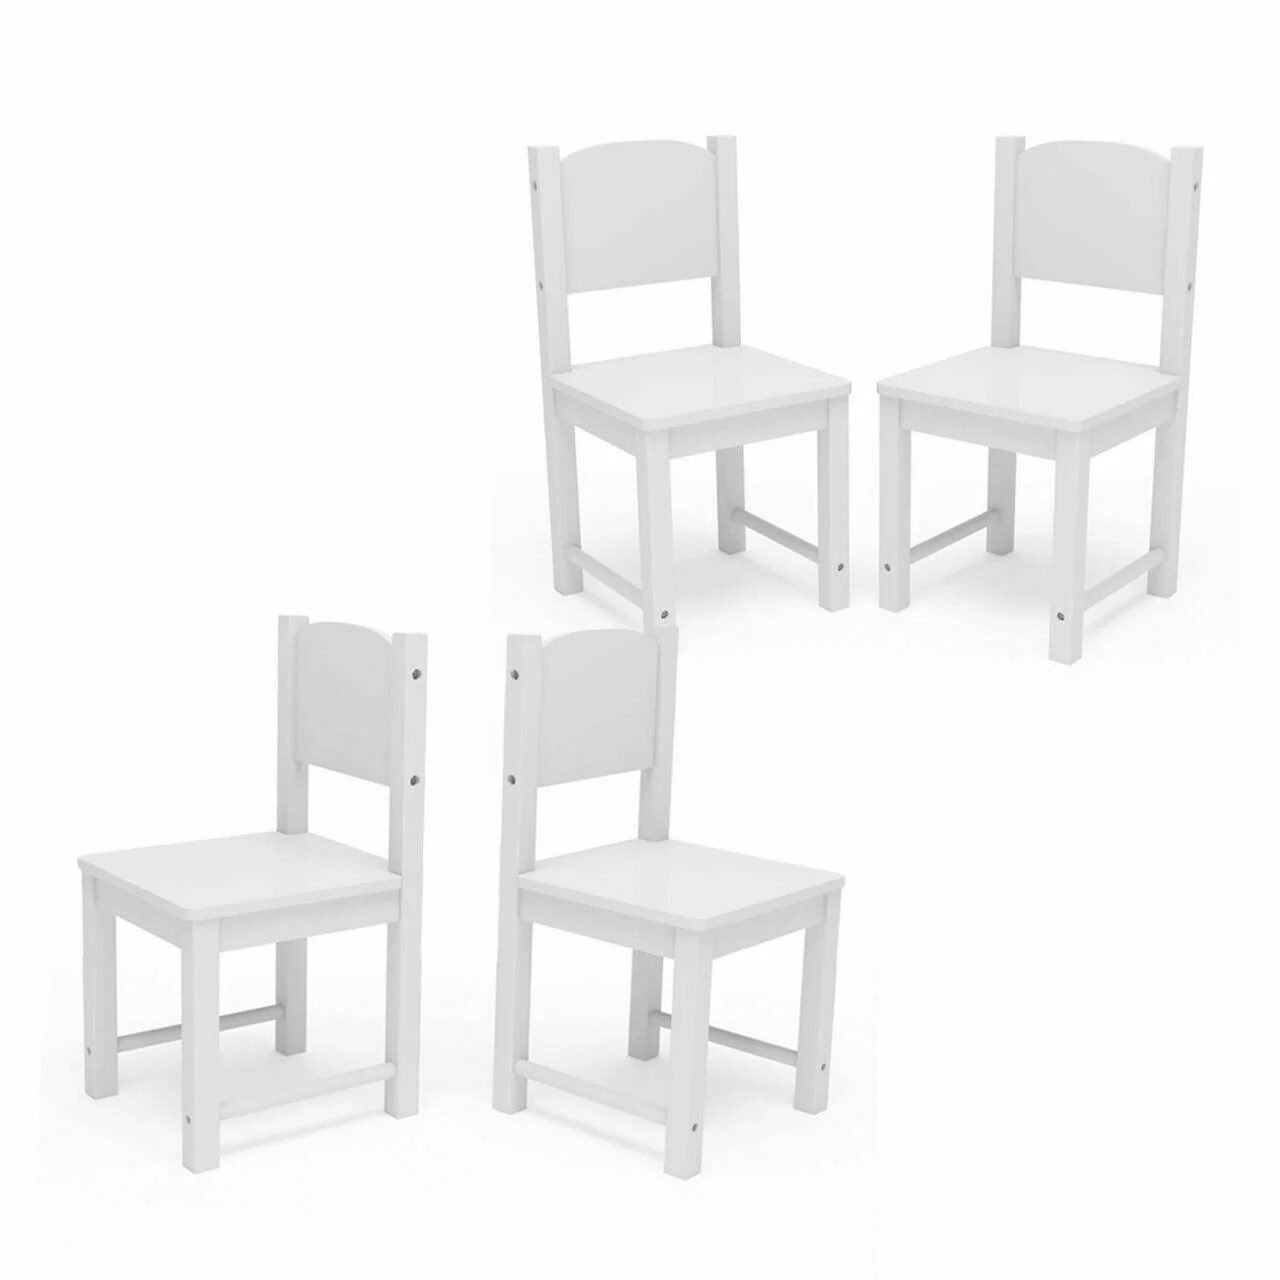 Kid Table And Chair Buy New Products Modern Contemporary Kids Table Chair Sets